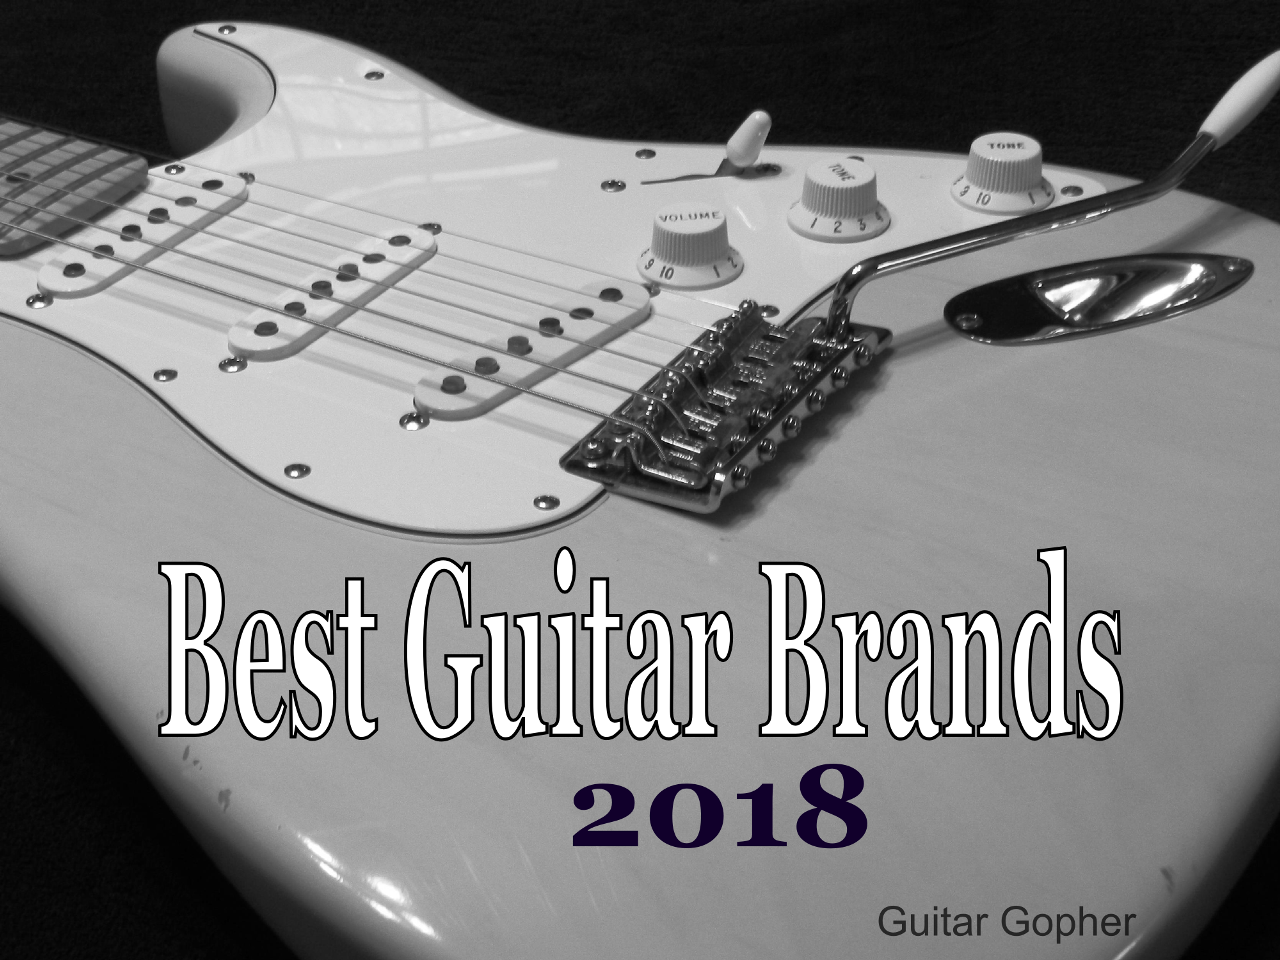 33 Best Guitar Brands: Top Acoustic and Electric Guitars 2018 | Spinditty